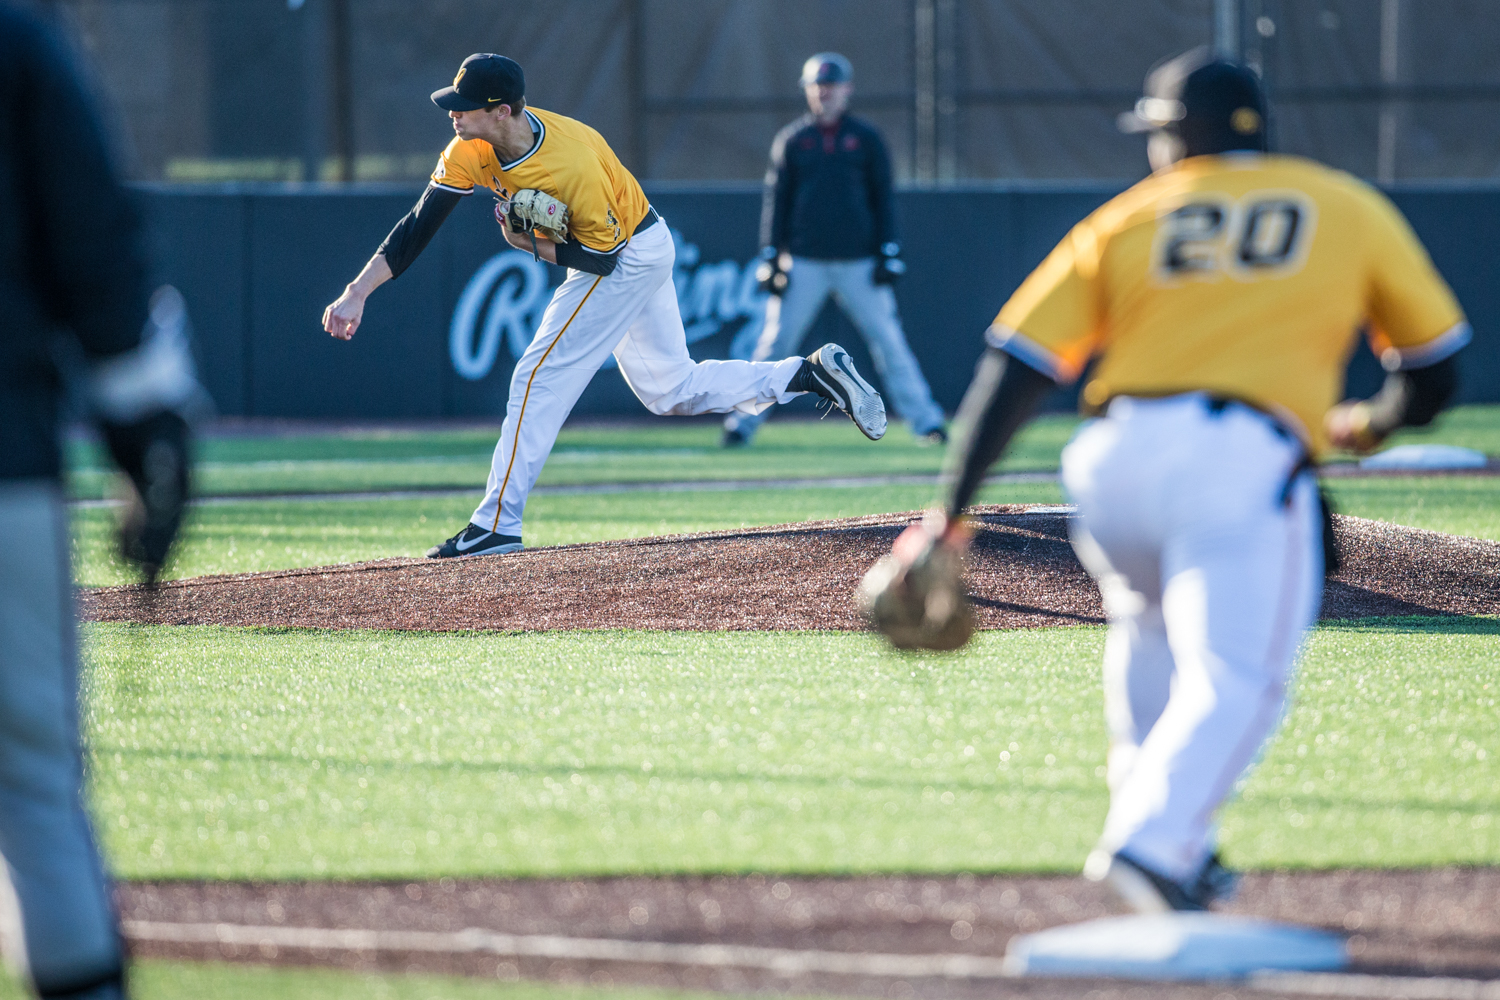 Iowa+pitcher+Grant+Judkins+throws+a+pitch+during+the+second+game+of+a+baseball+doubleheader+between+Iowa+and+Cal-State+Northridge+at+Duane+Banks+Field+on+Sunday%2C+March+17%2C+2019.+The+Hawkeyes+took+the+series+by+defeating+the+Matadors%2C+3-1.